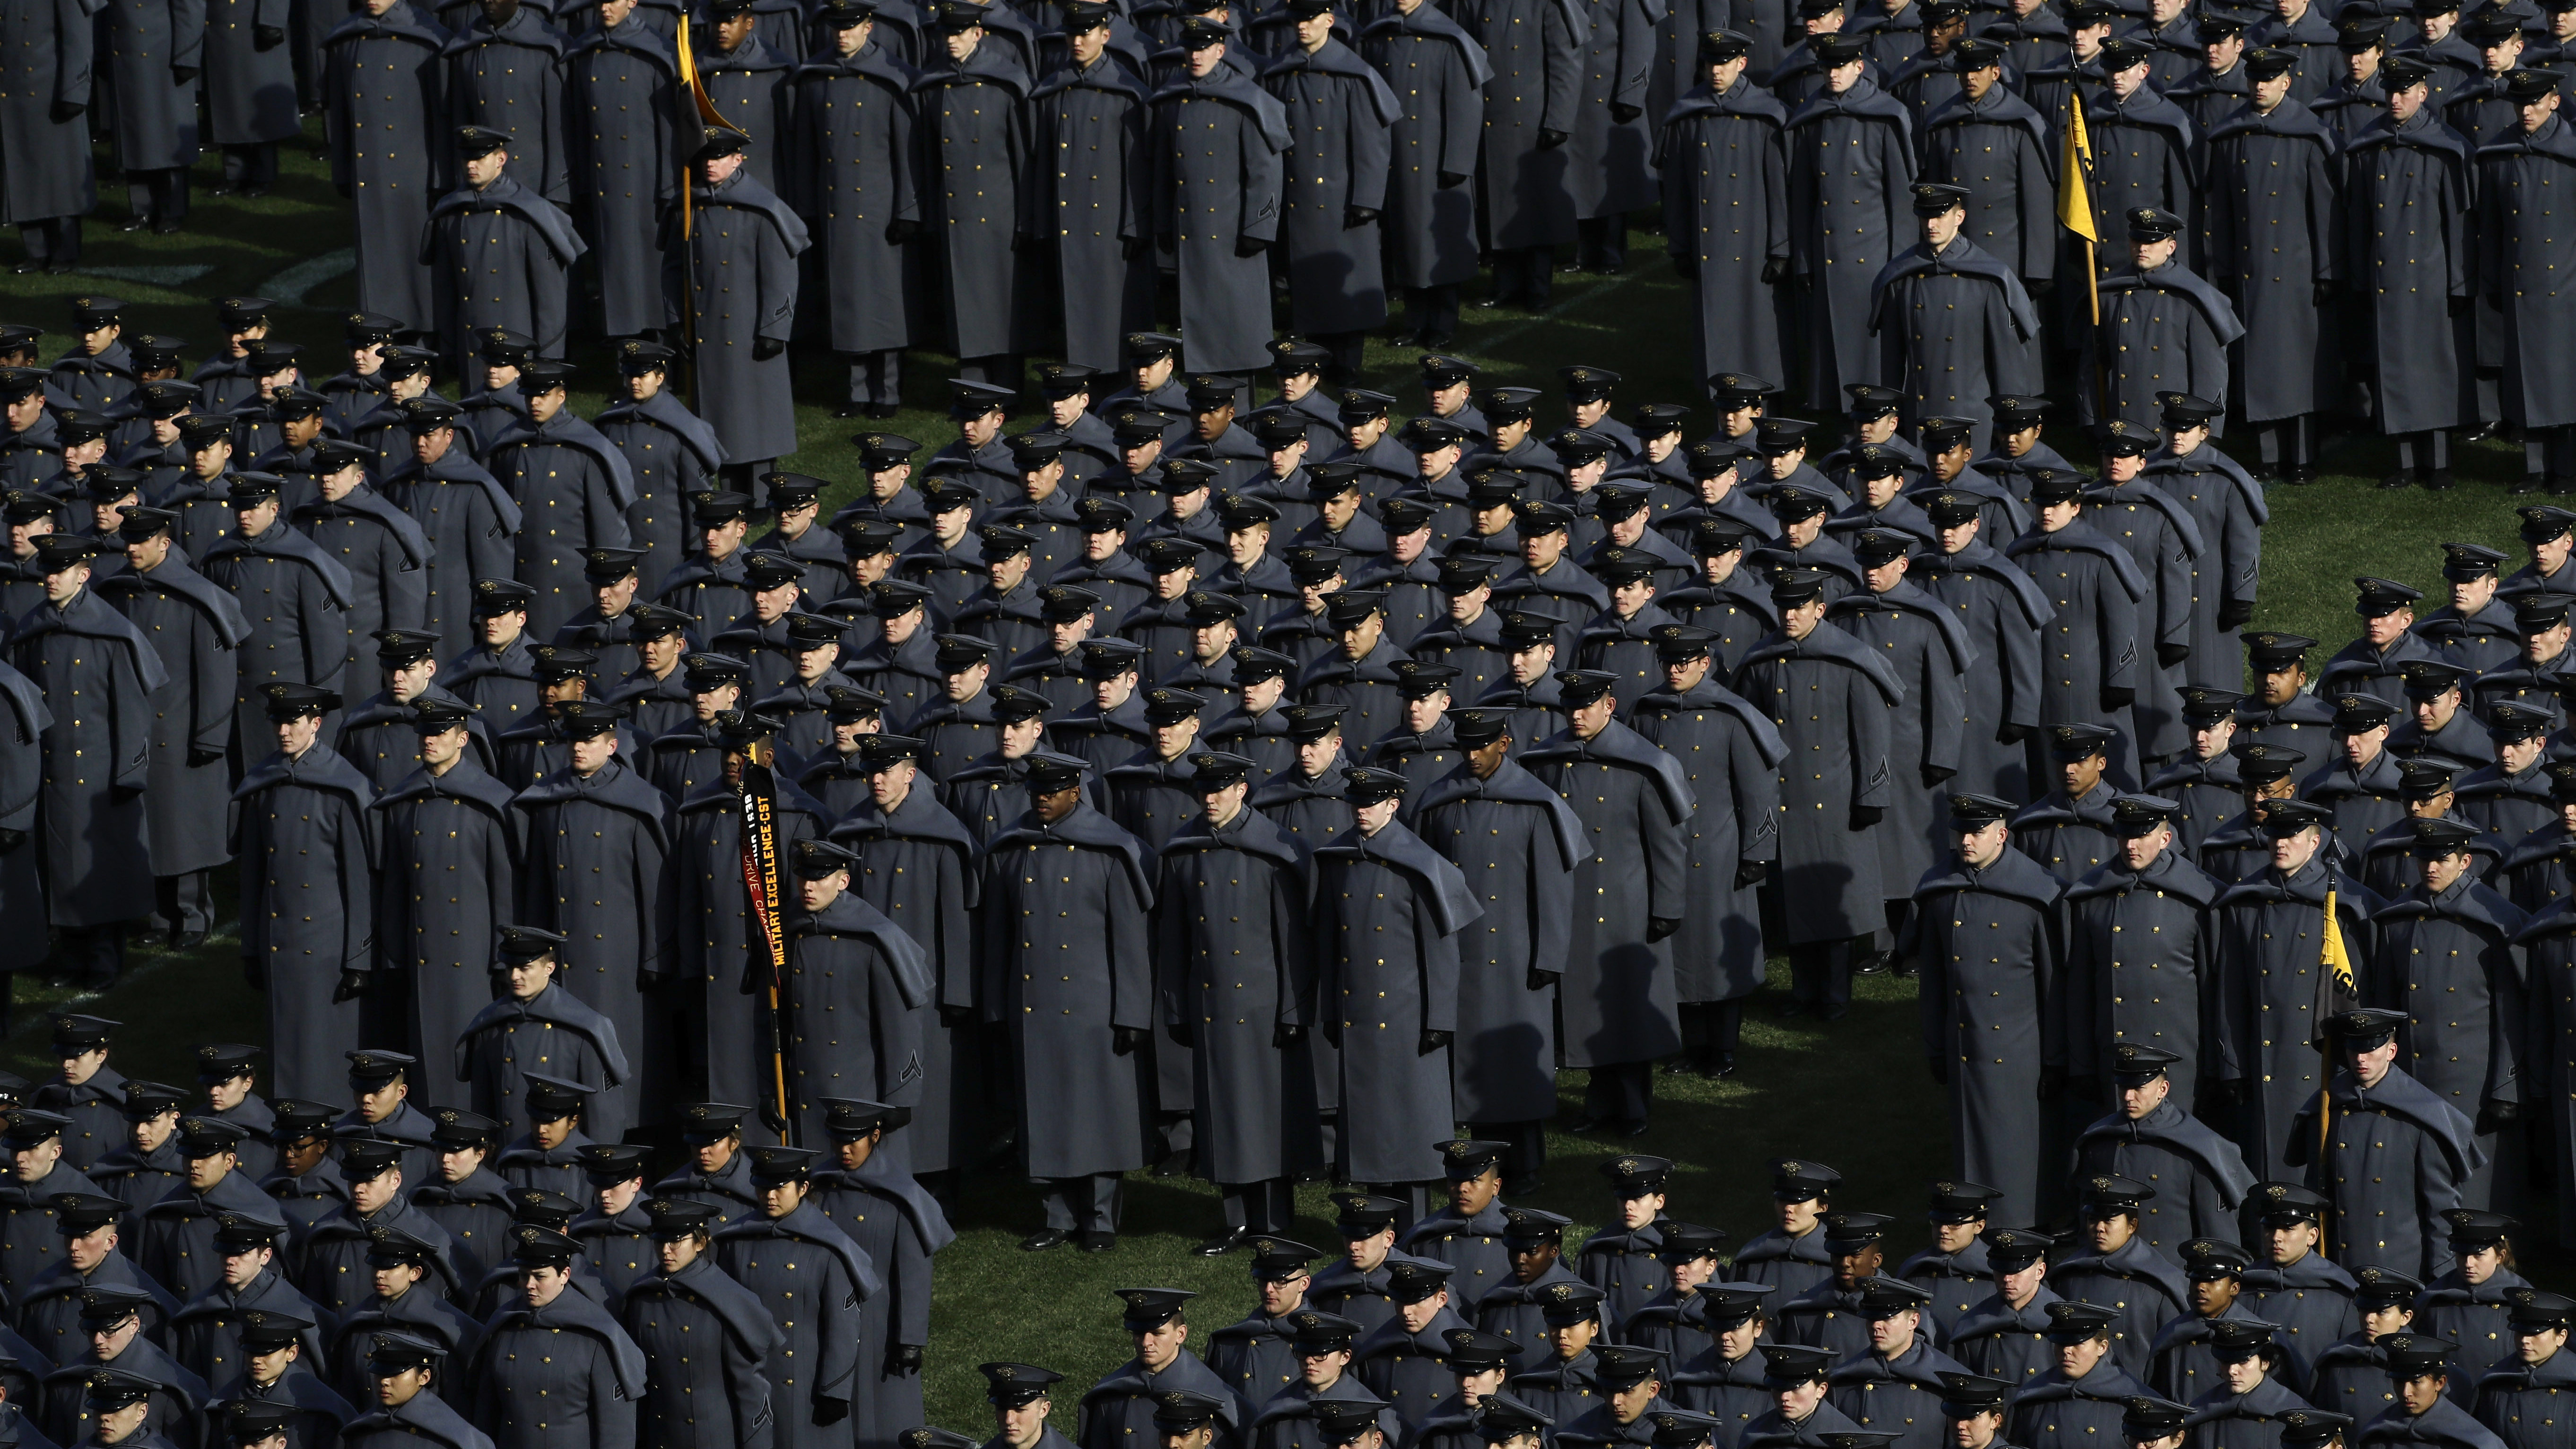 Army cadets stand at attention after marching onto the field before an NCAA college football game against Navy, Saturday, Dec. 8, 2018, in Philadelphia. (AP Photo/Matt Slocum)